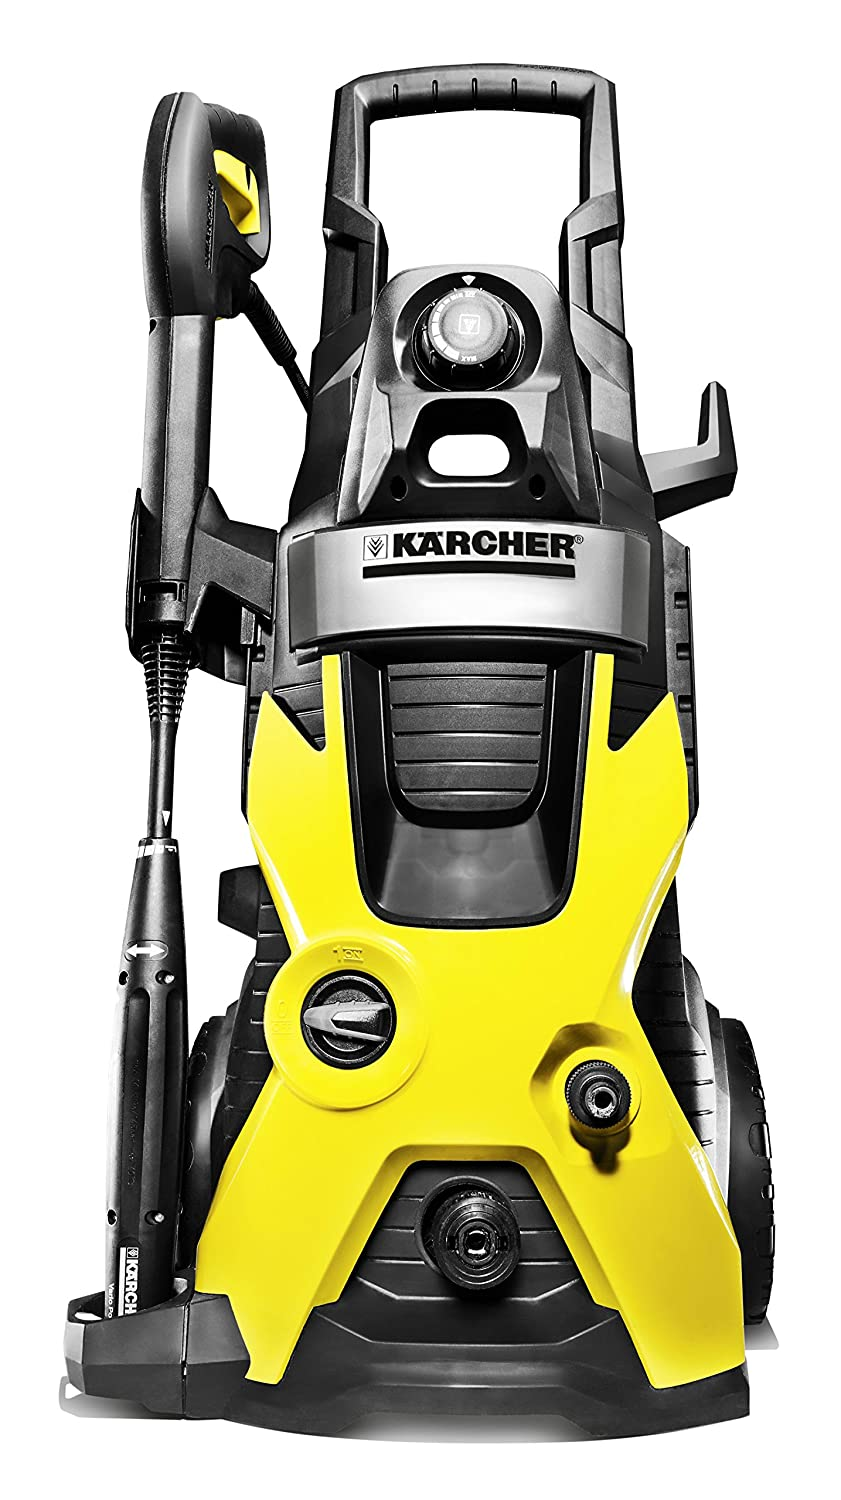 amazon com karcher k5 electric power pressure washer yellow 2000